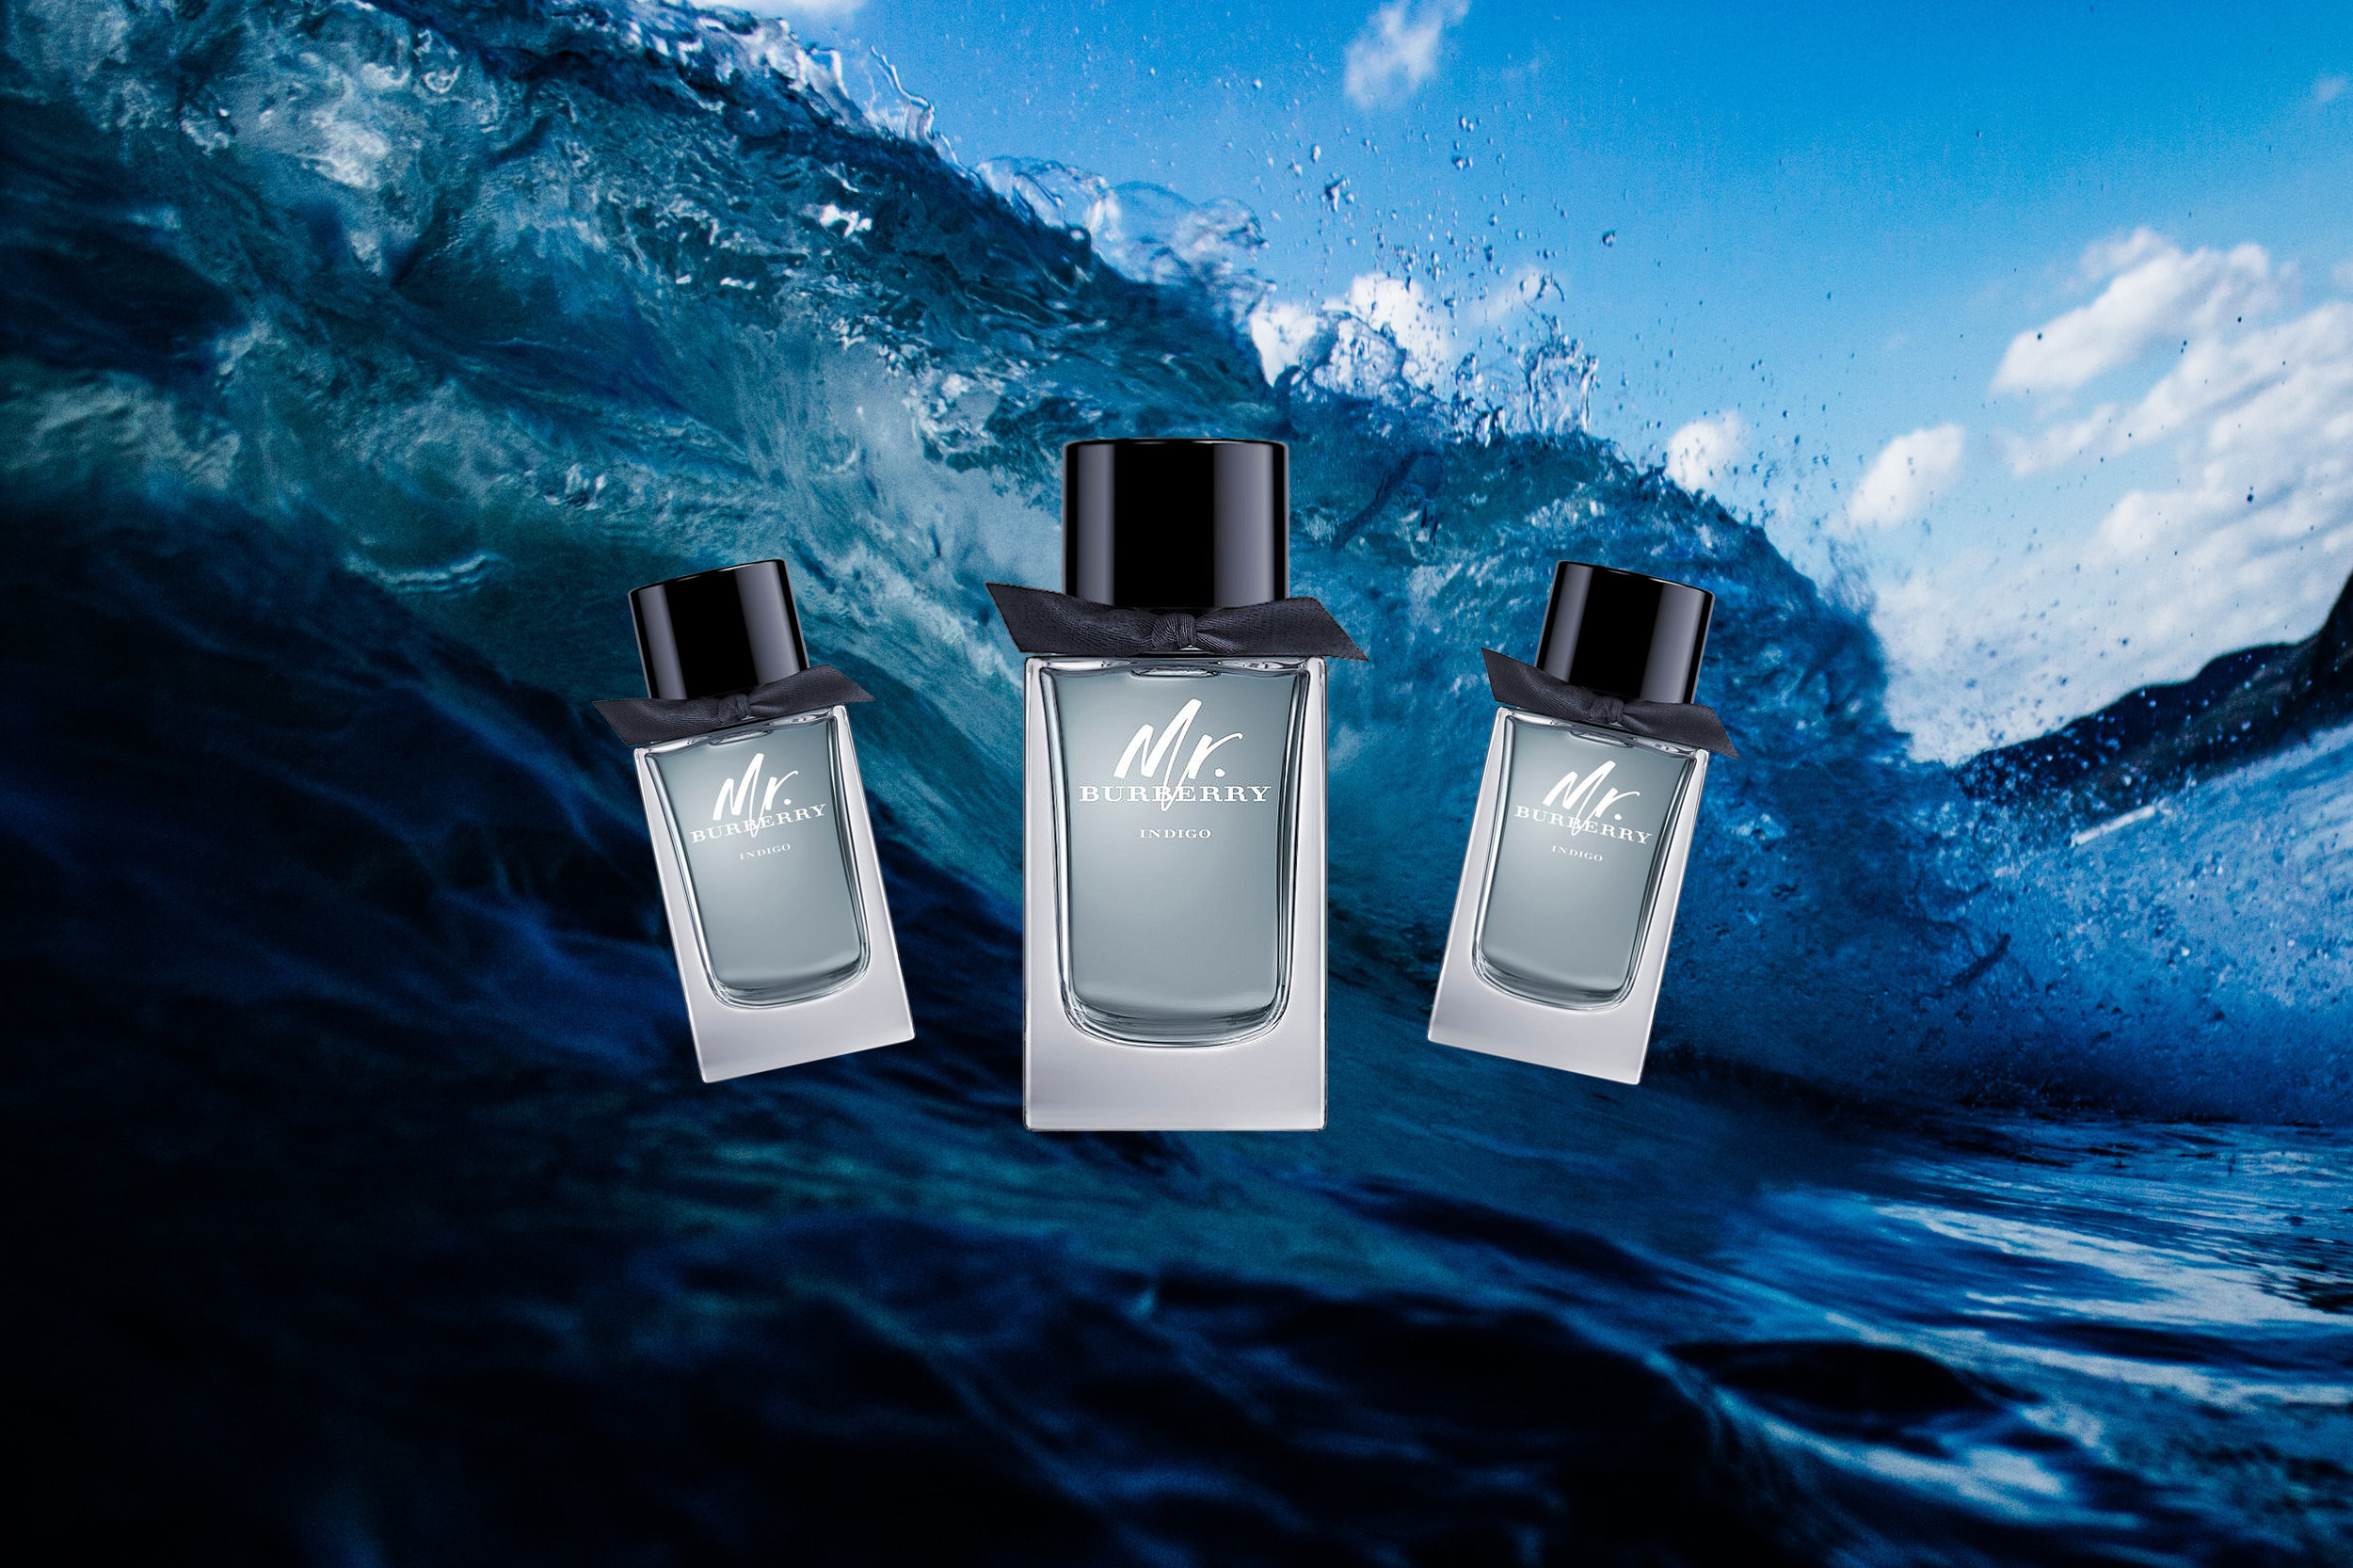 Mr Burberry Indigo Eau De Toilette.jpg